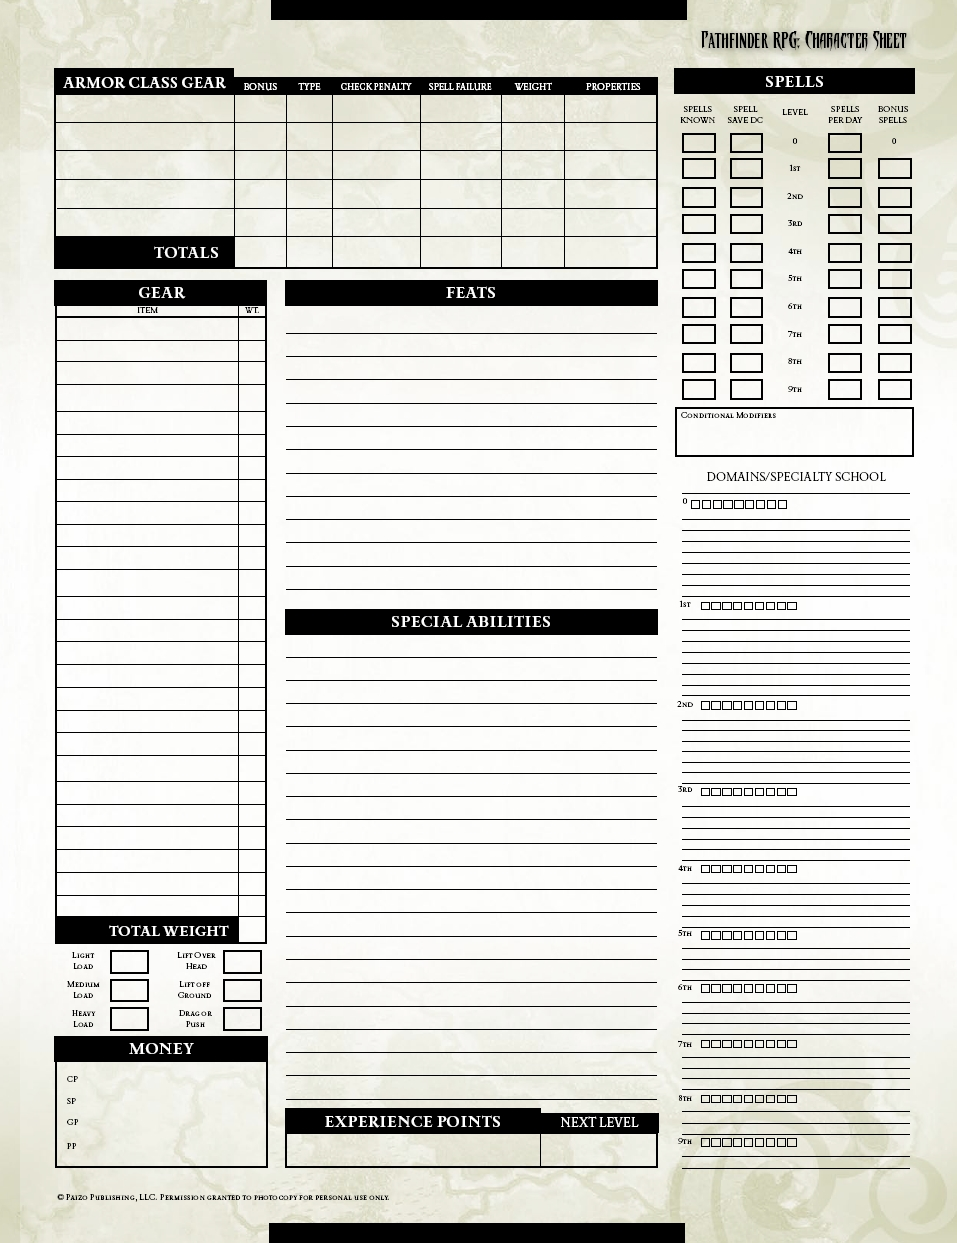 It is a picture of Hilaire Printable Pathfinder Character Sheet